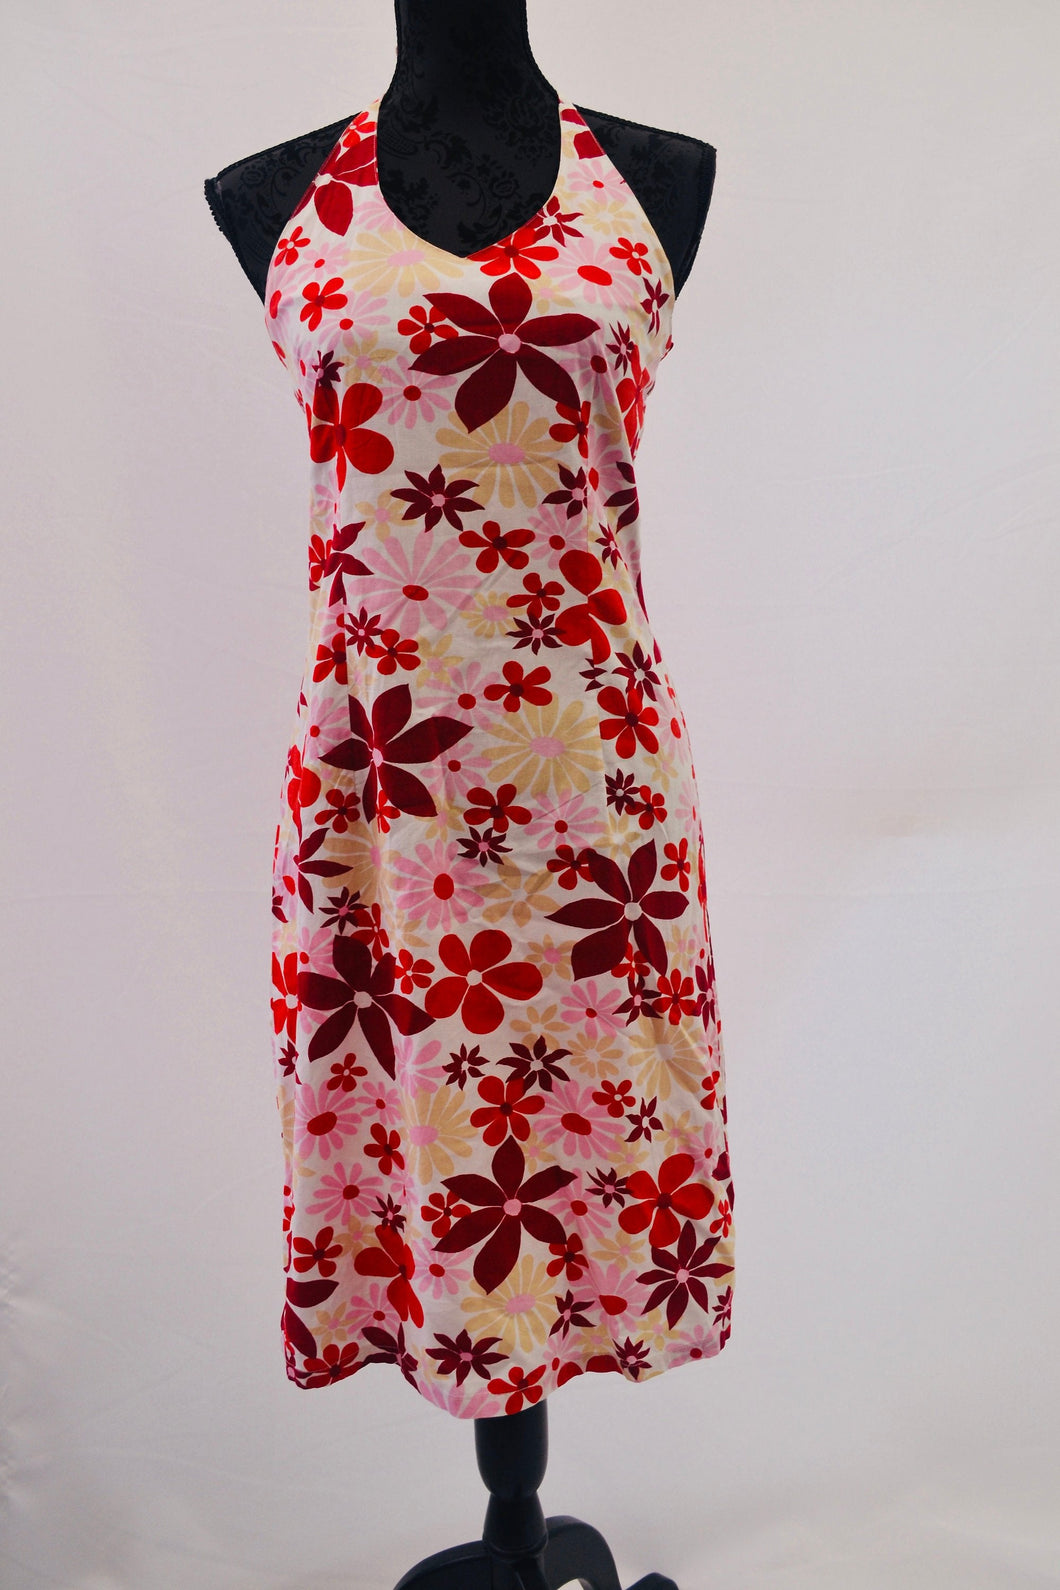 1990s halter neck boho floral dress in red, white and pink, Est UK size 10/12